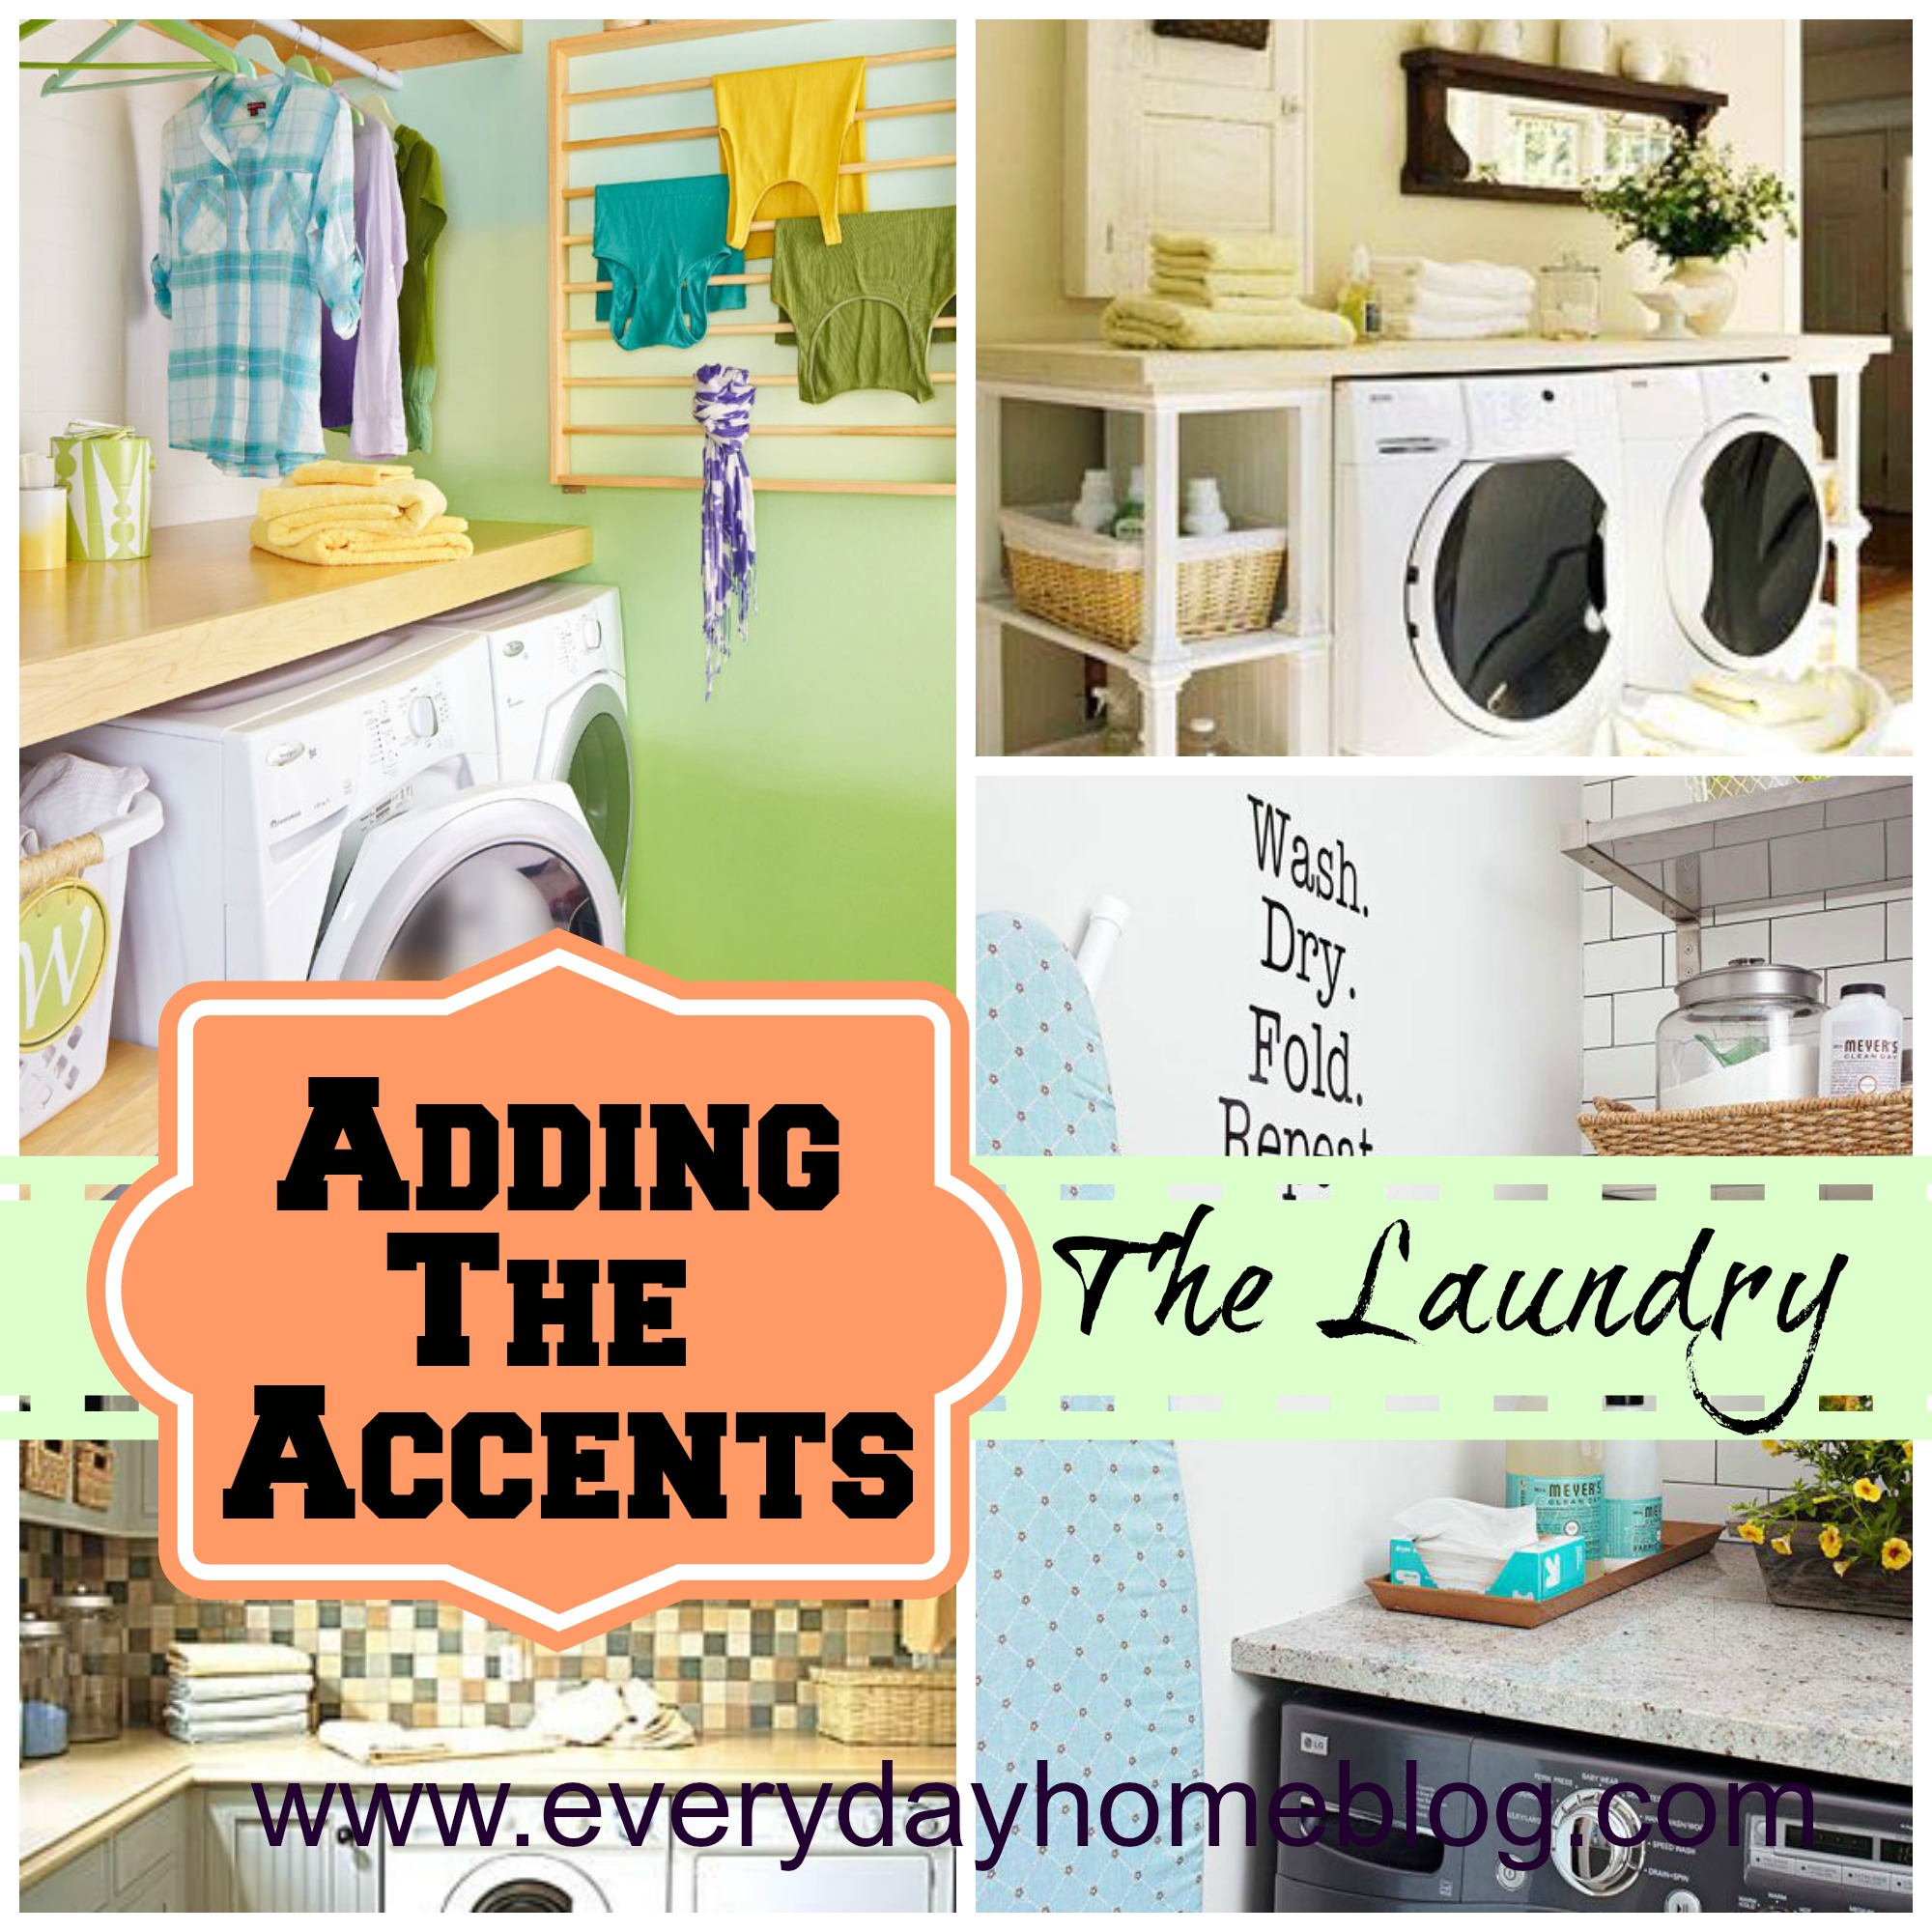 Diy Laundry Room Decor 8 Tips For Creating A Great Laundry Room By The Everyday Home